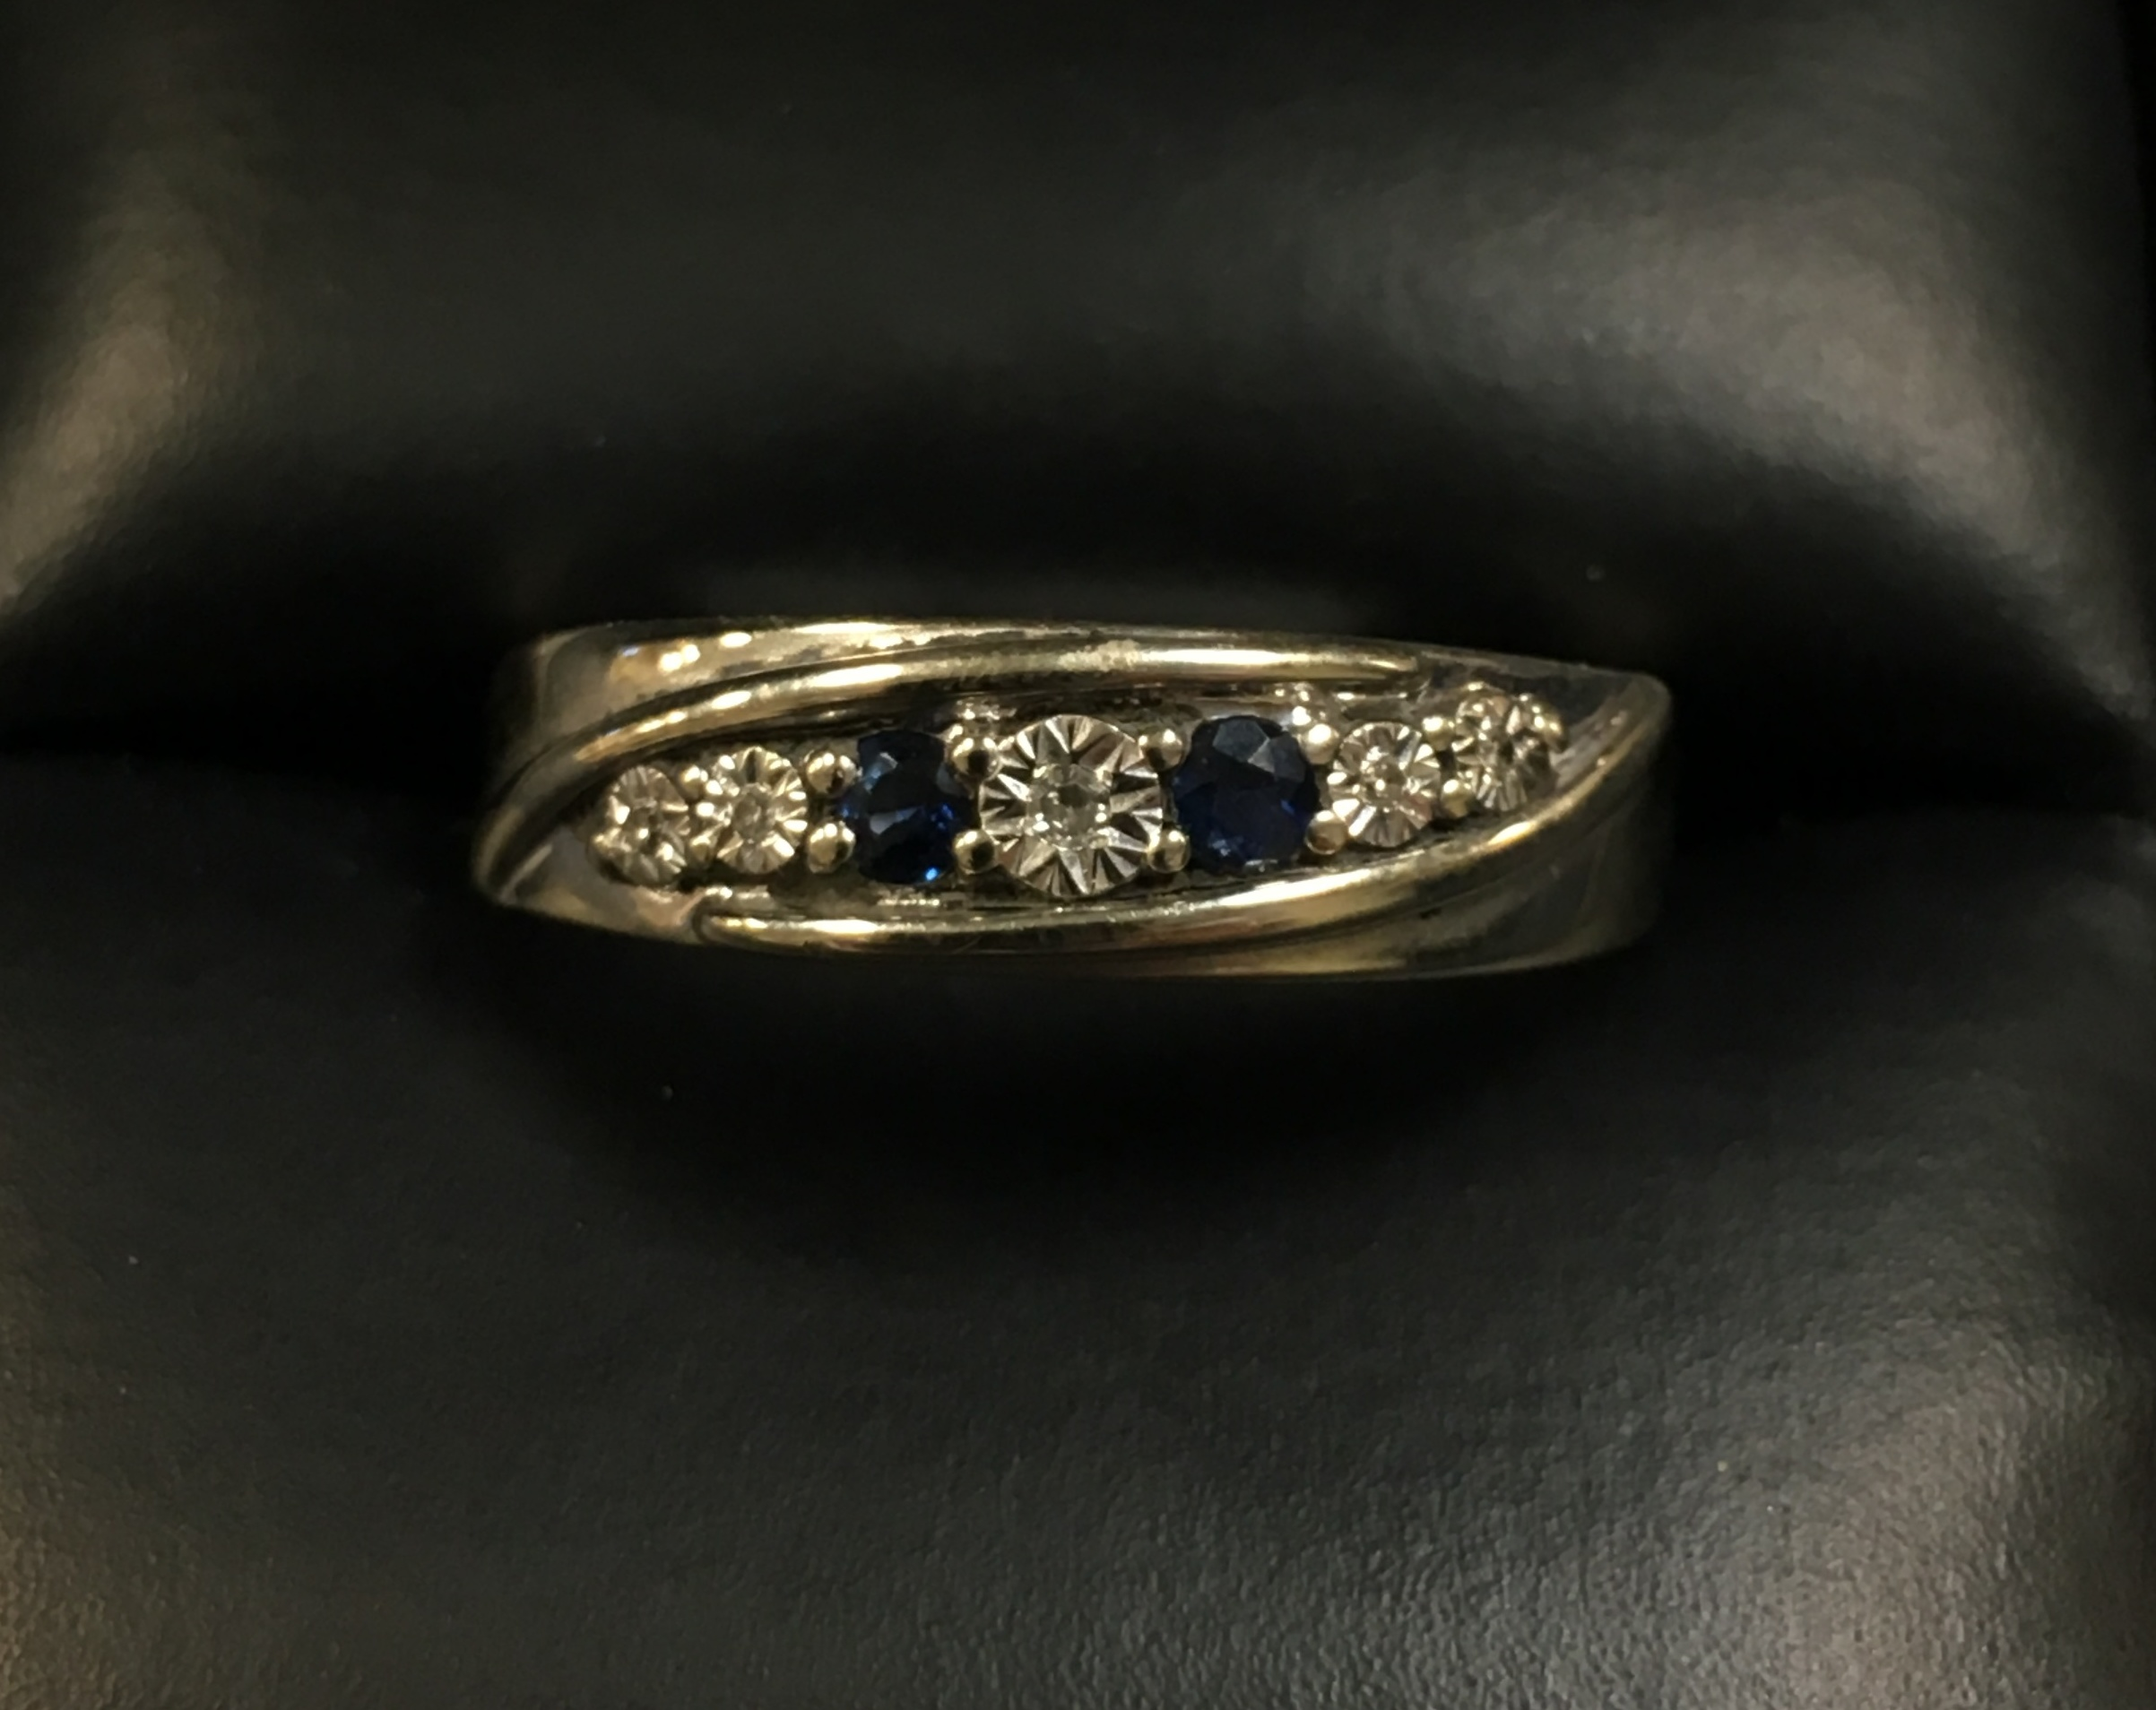 10KT WHITE GOLD DIAMOND CHIP RING WITH TINY BLUE STONES. SIZE: 10